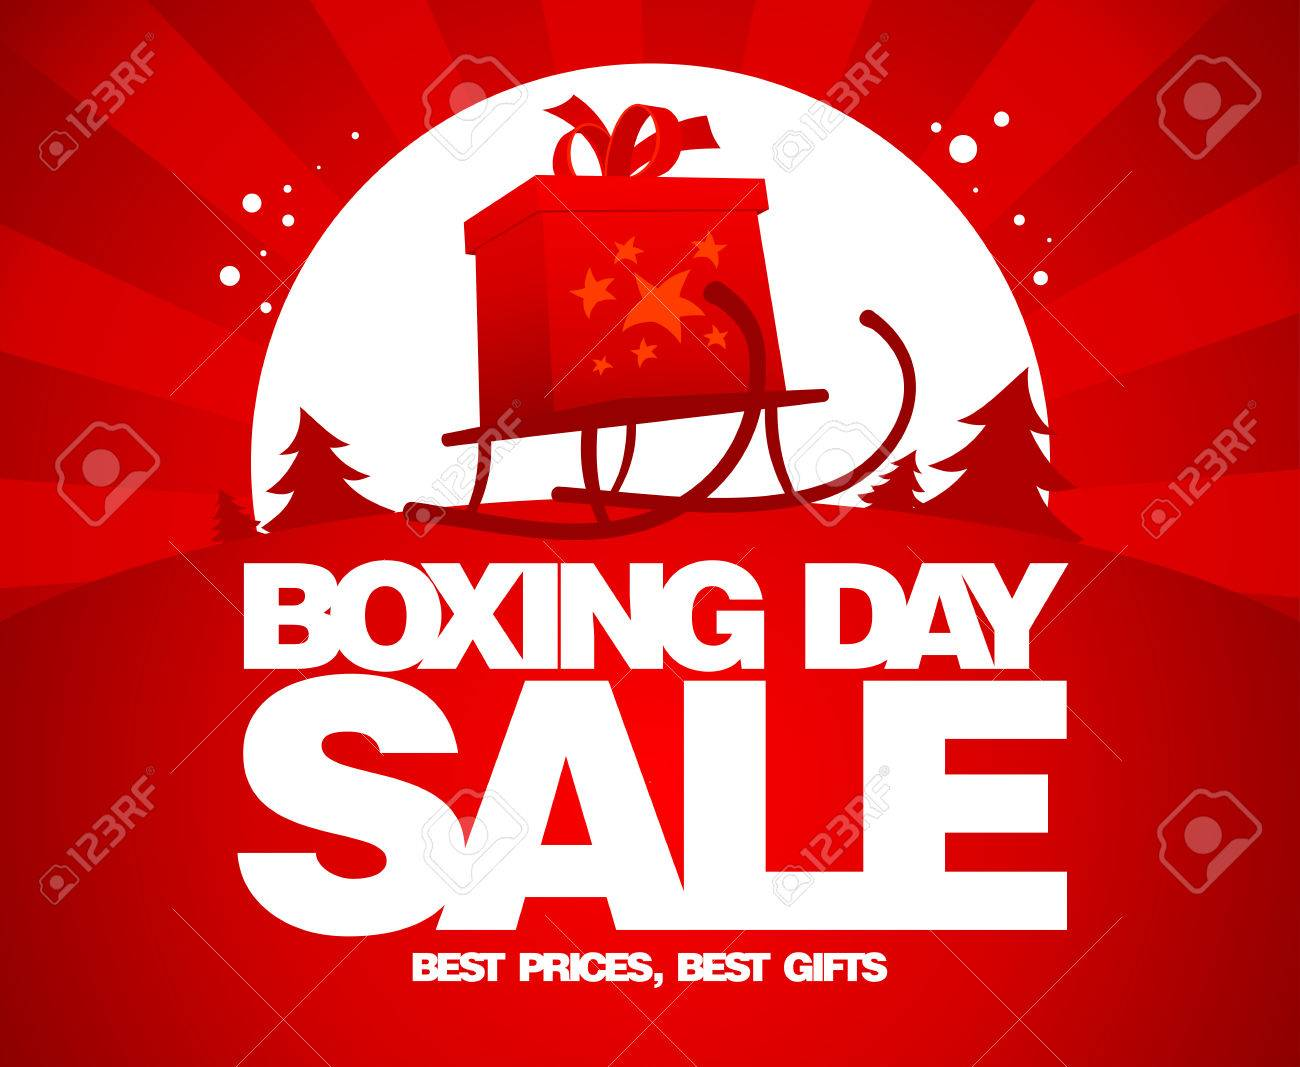 Gift Box On A Sled Boxing Day Sale Design Royalty Free Cliparts Vectors And Stock Illustration Image 33976257